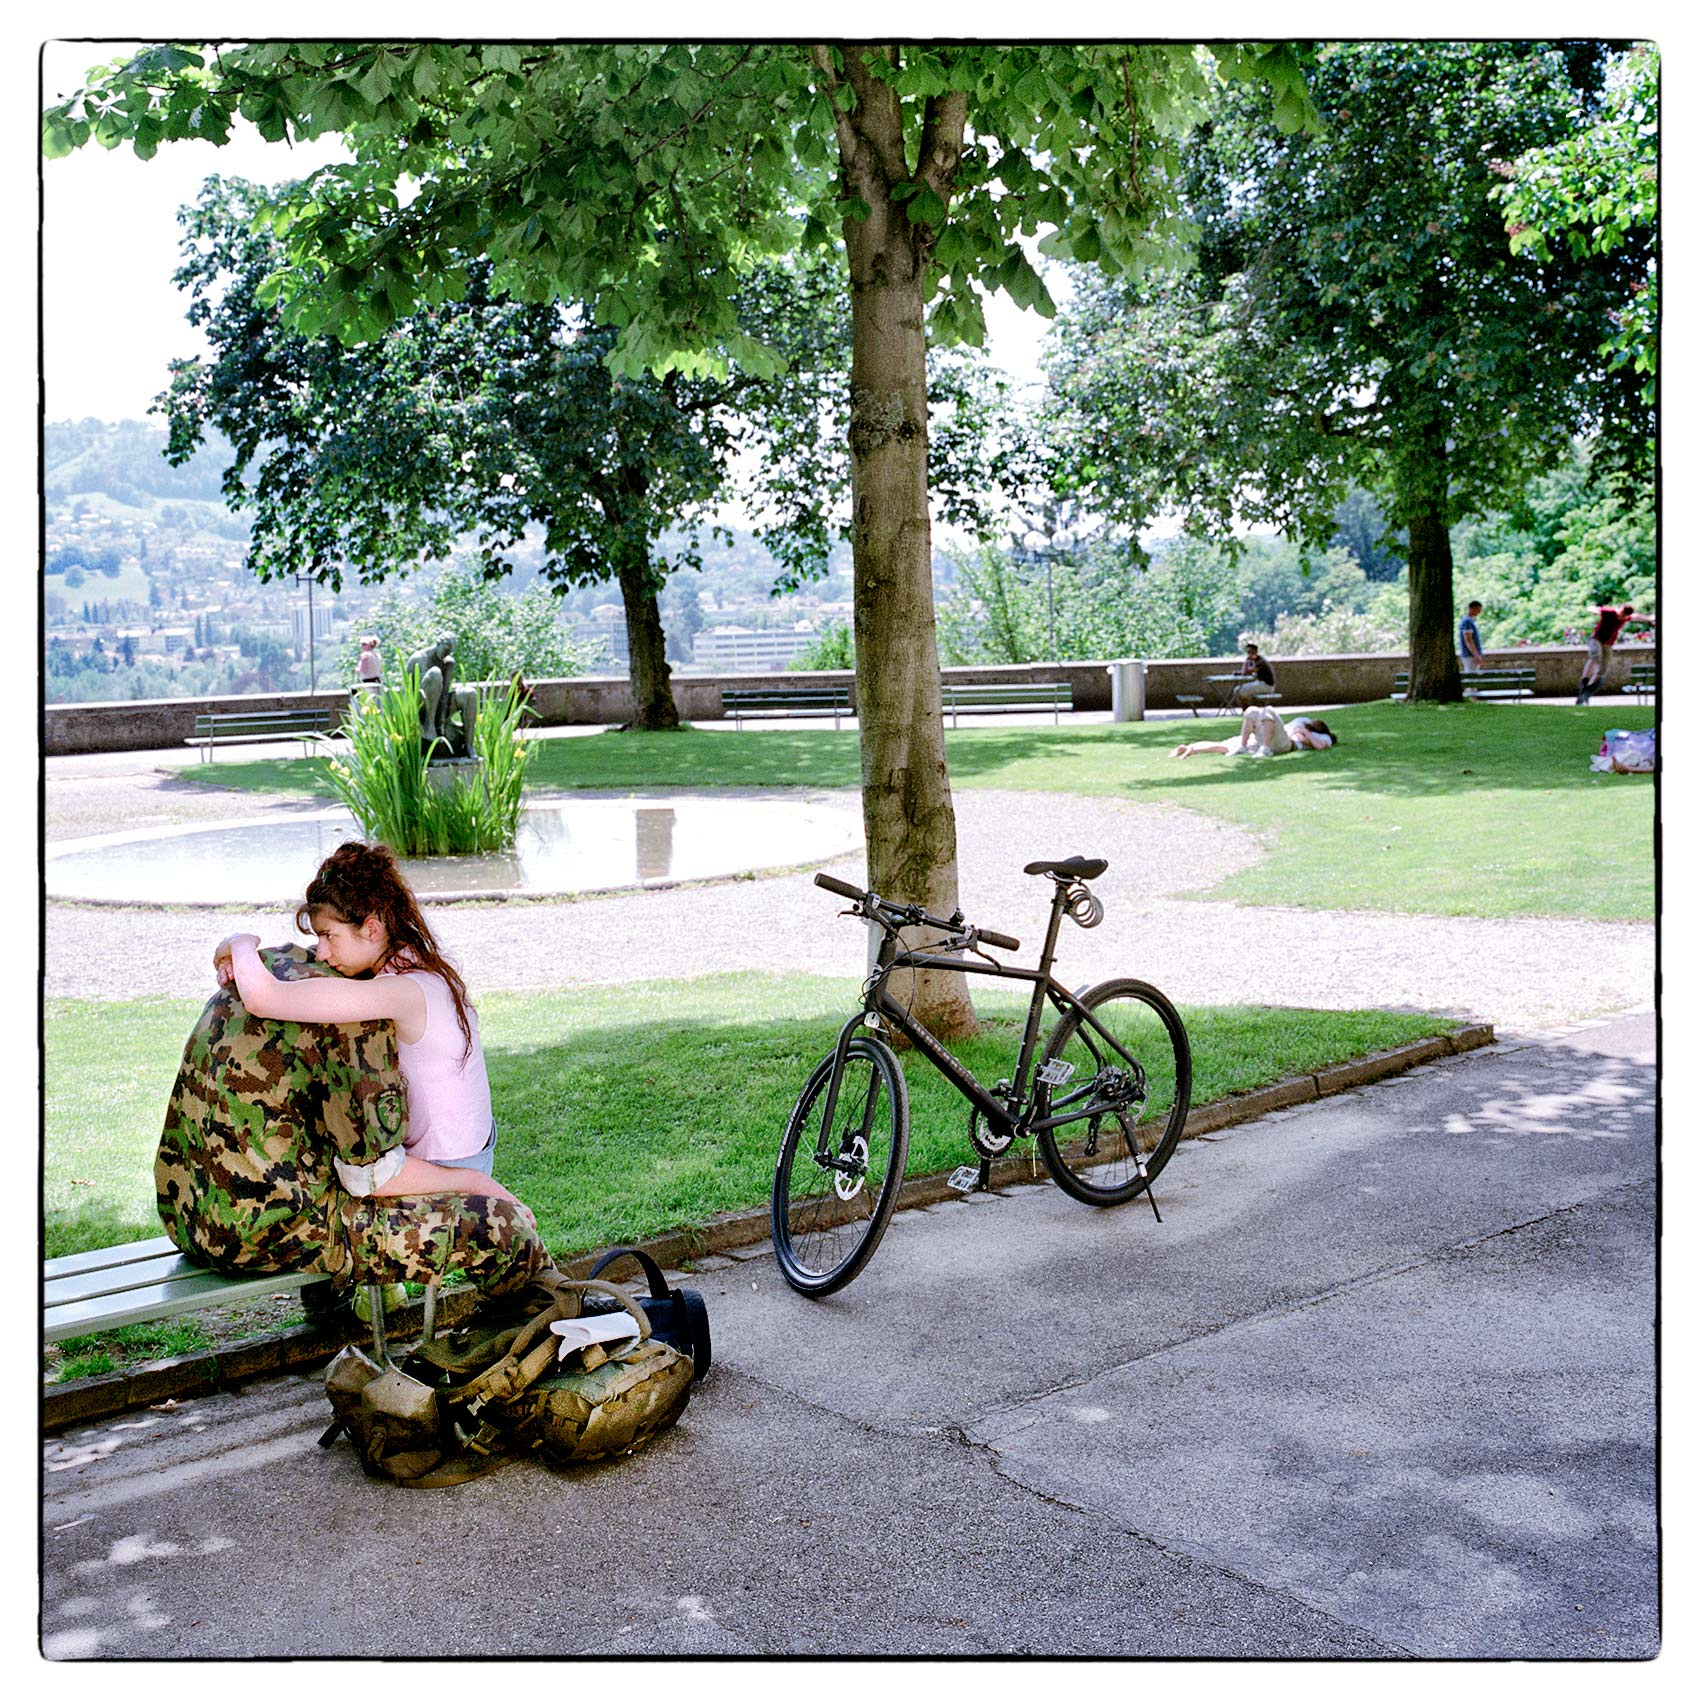 a-woman-hugs-her-boyfriend-before-he-leaves-for-duty-at-a-park-in-geneva-switzerland